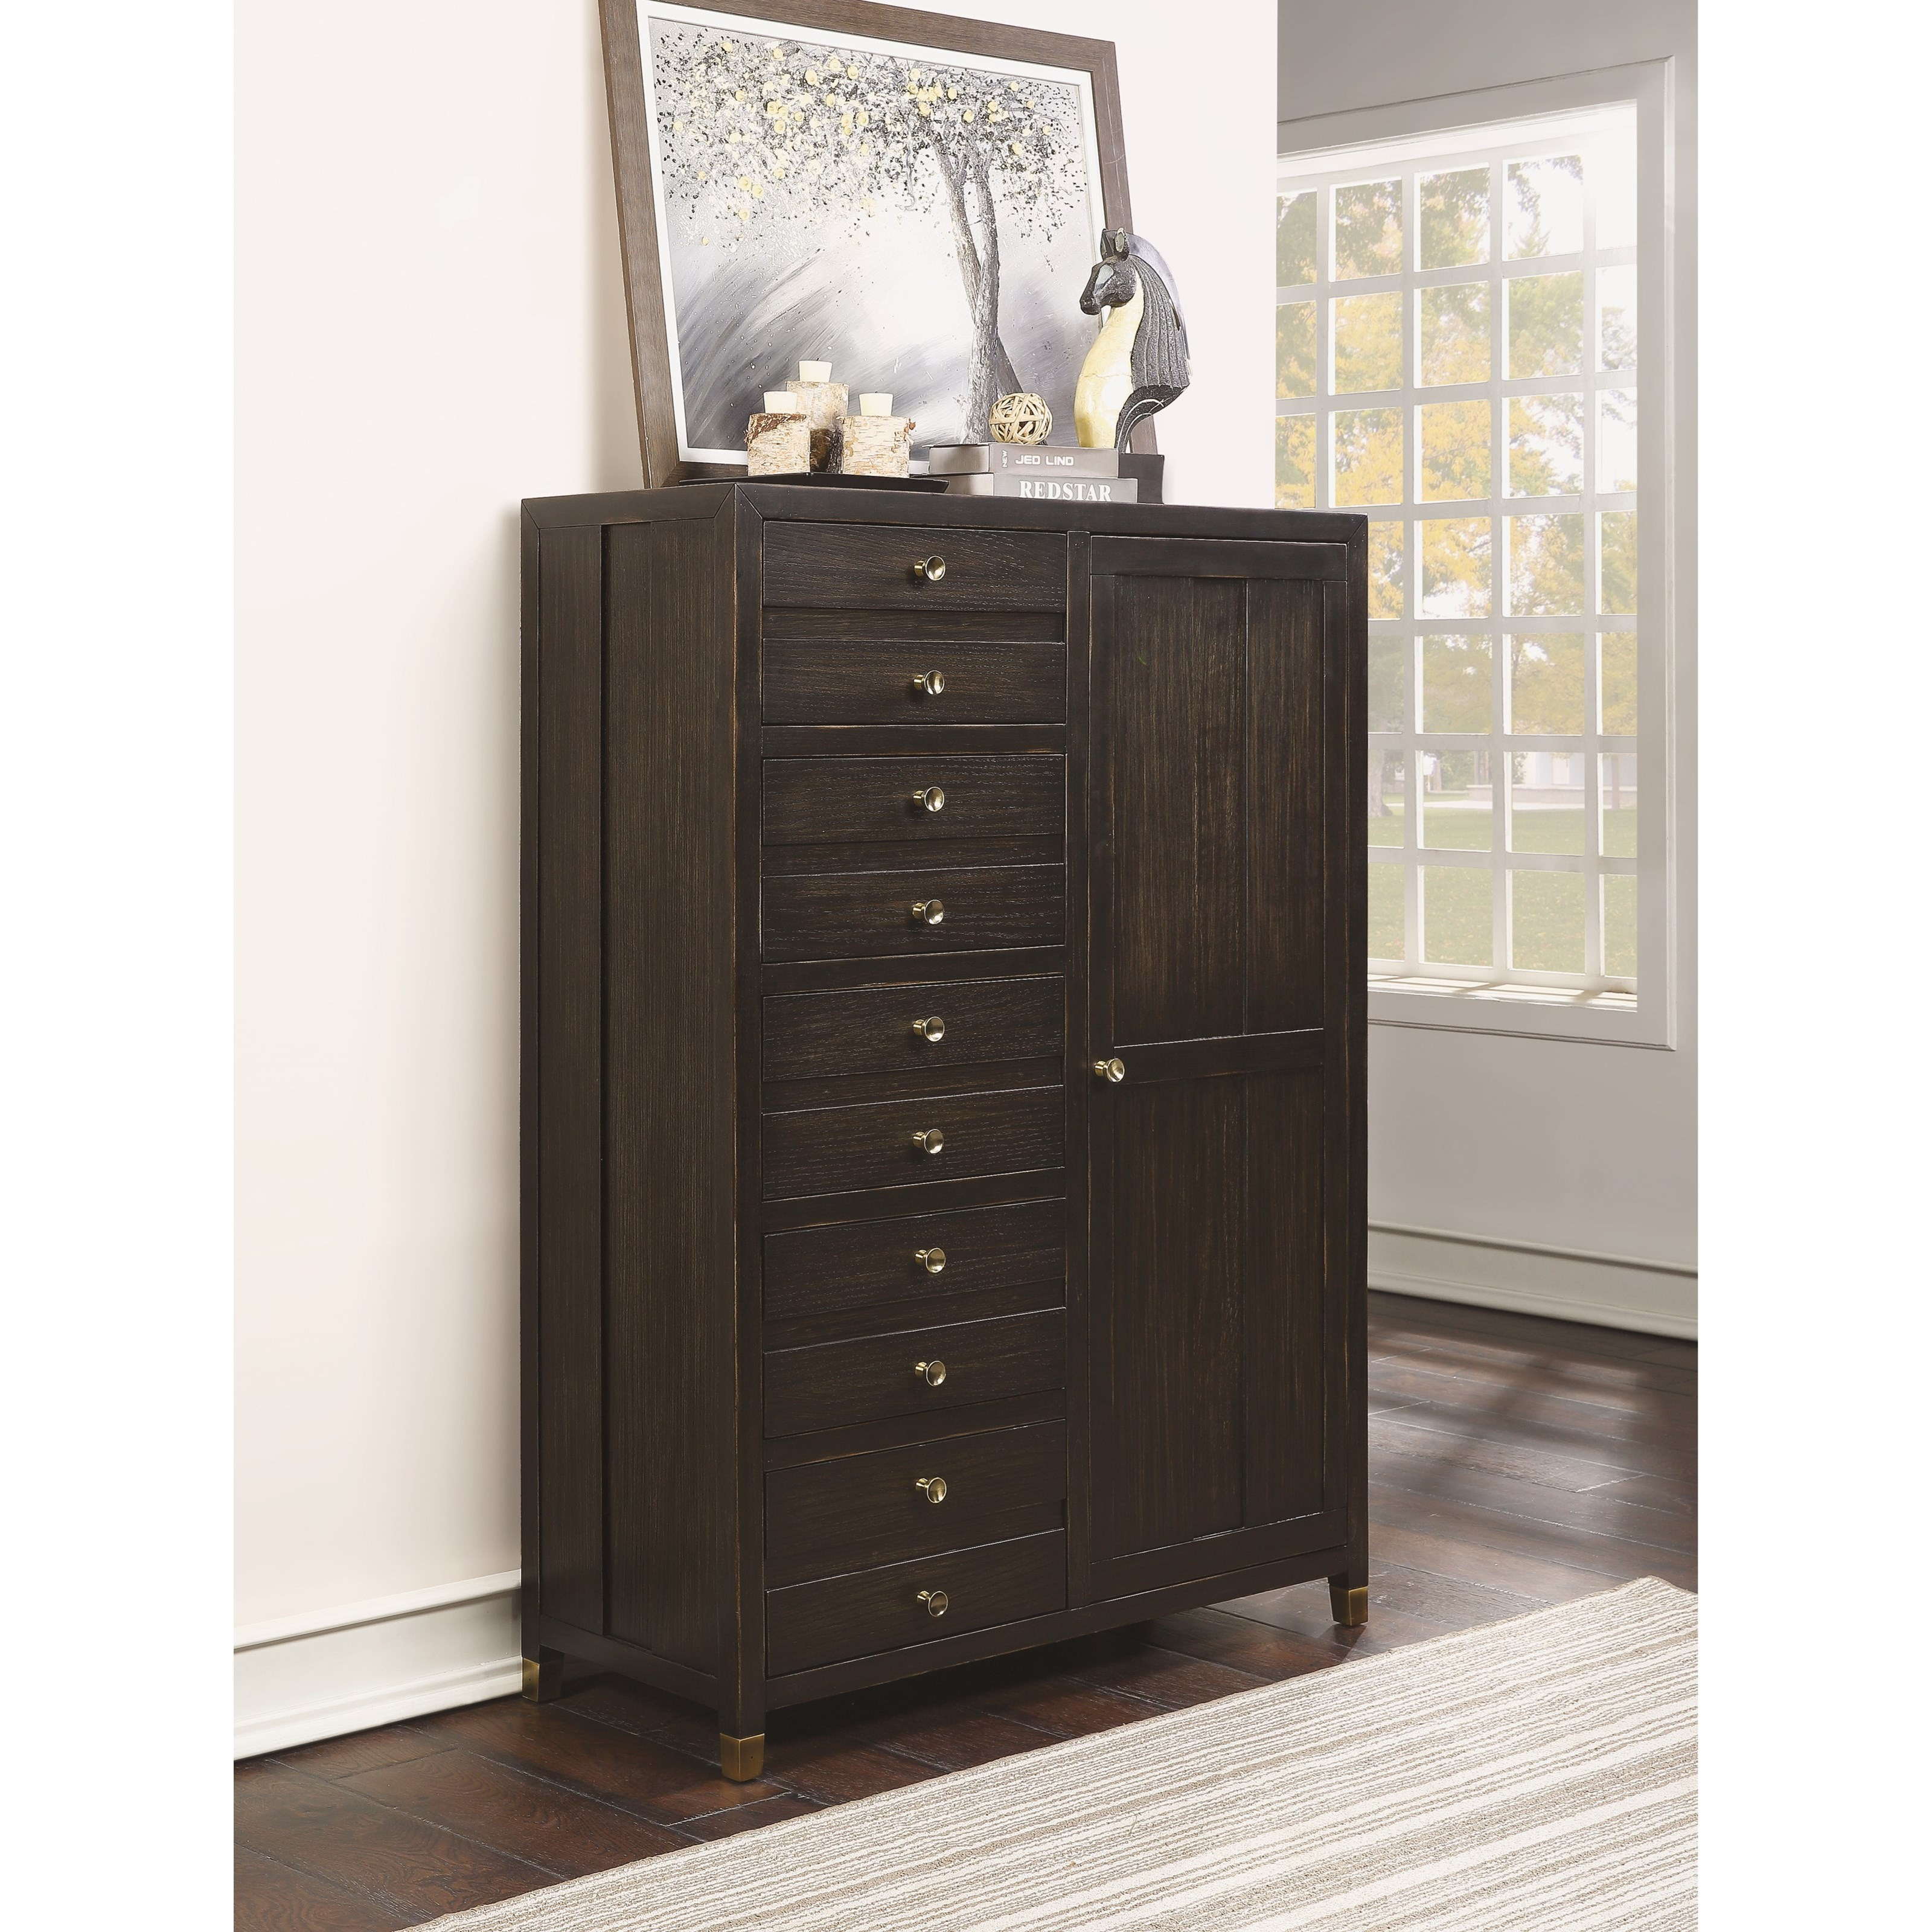 Cologne Gentleman's Chest by Flexsteel Wynwood Collection at Steger's Furniture